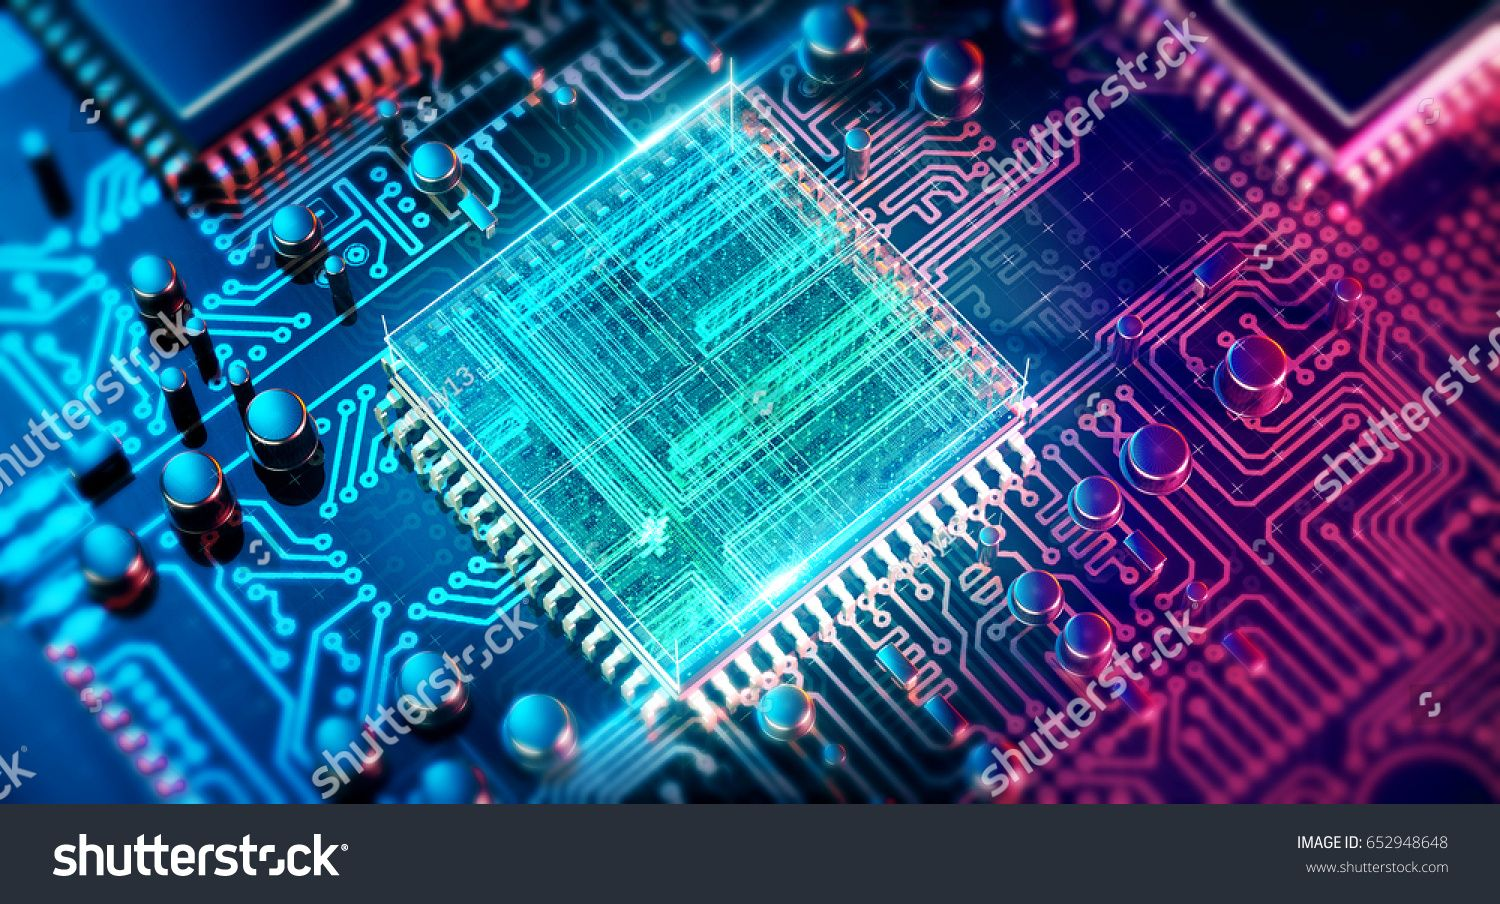 3d Rendering Of An Electronics Printed Circuit Board